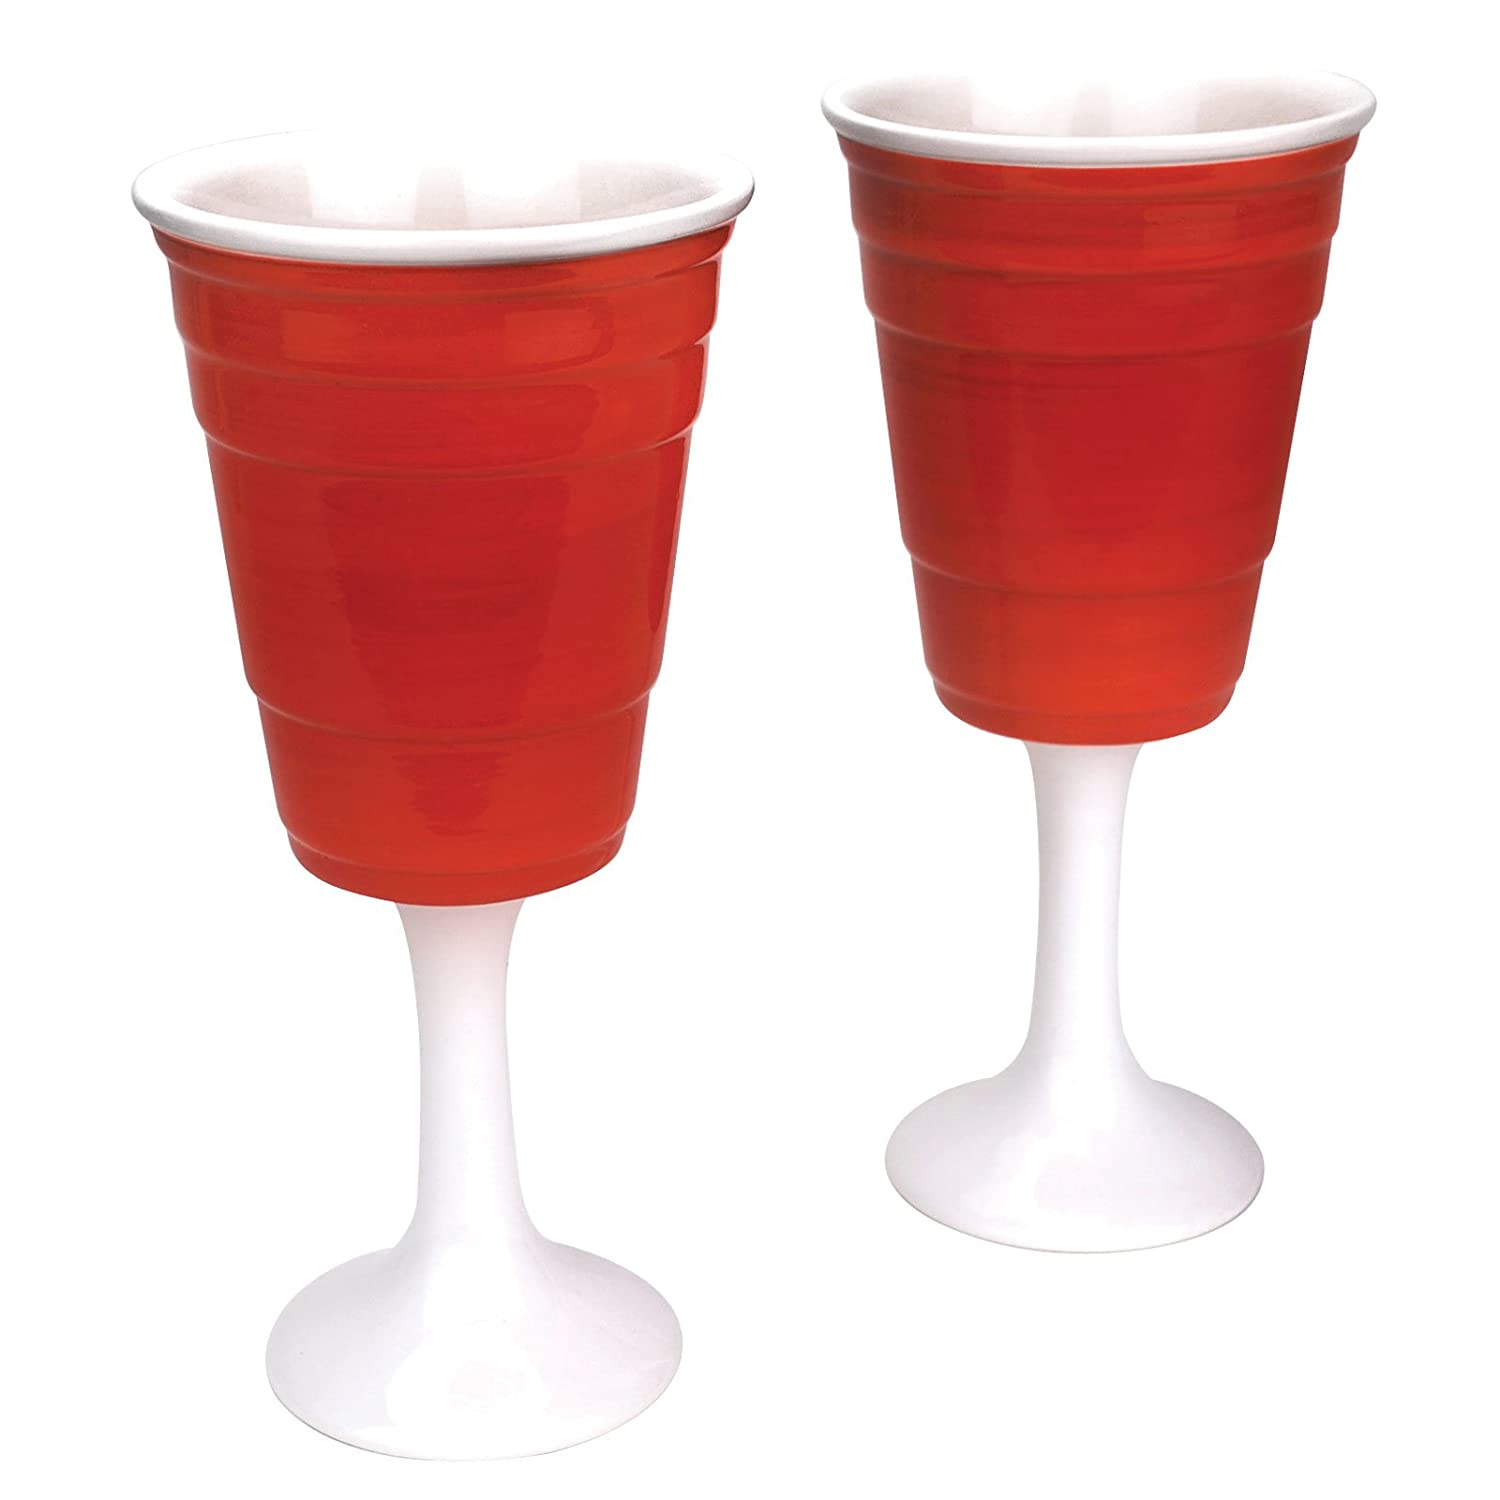 The Best Wine Gifts Red Solo Cup Wine Glasses